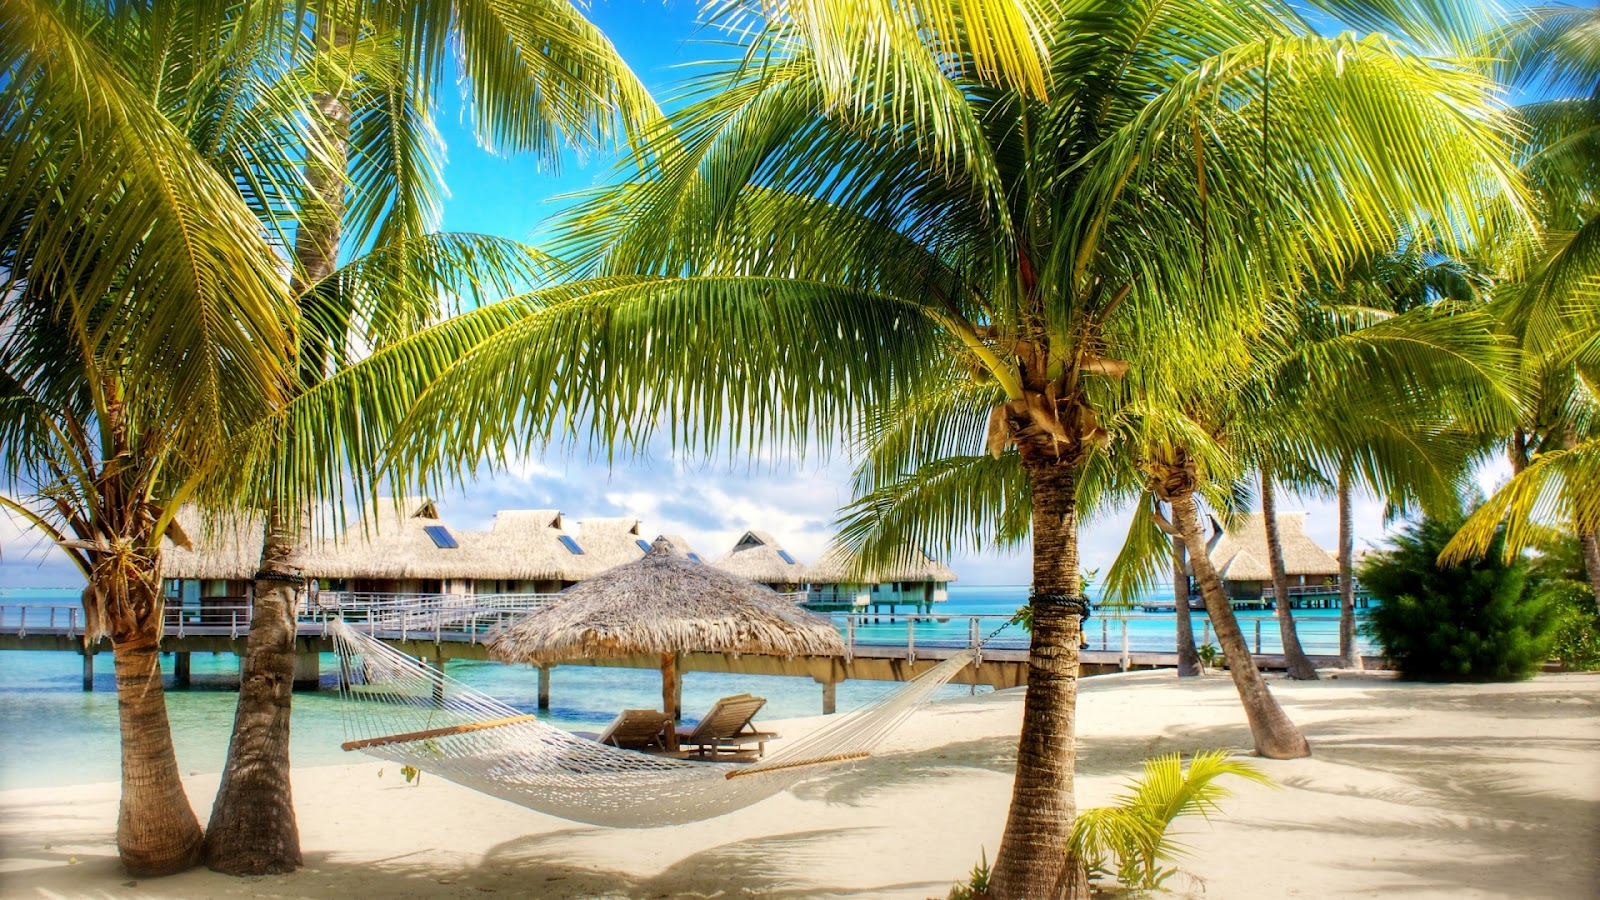 Exotic Vacation  Full HD Desktop Wallpapers 1080p